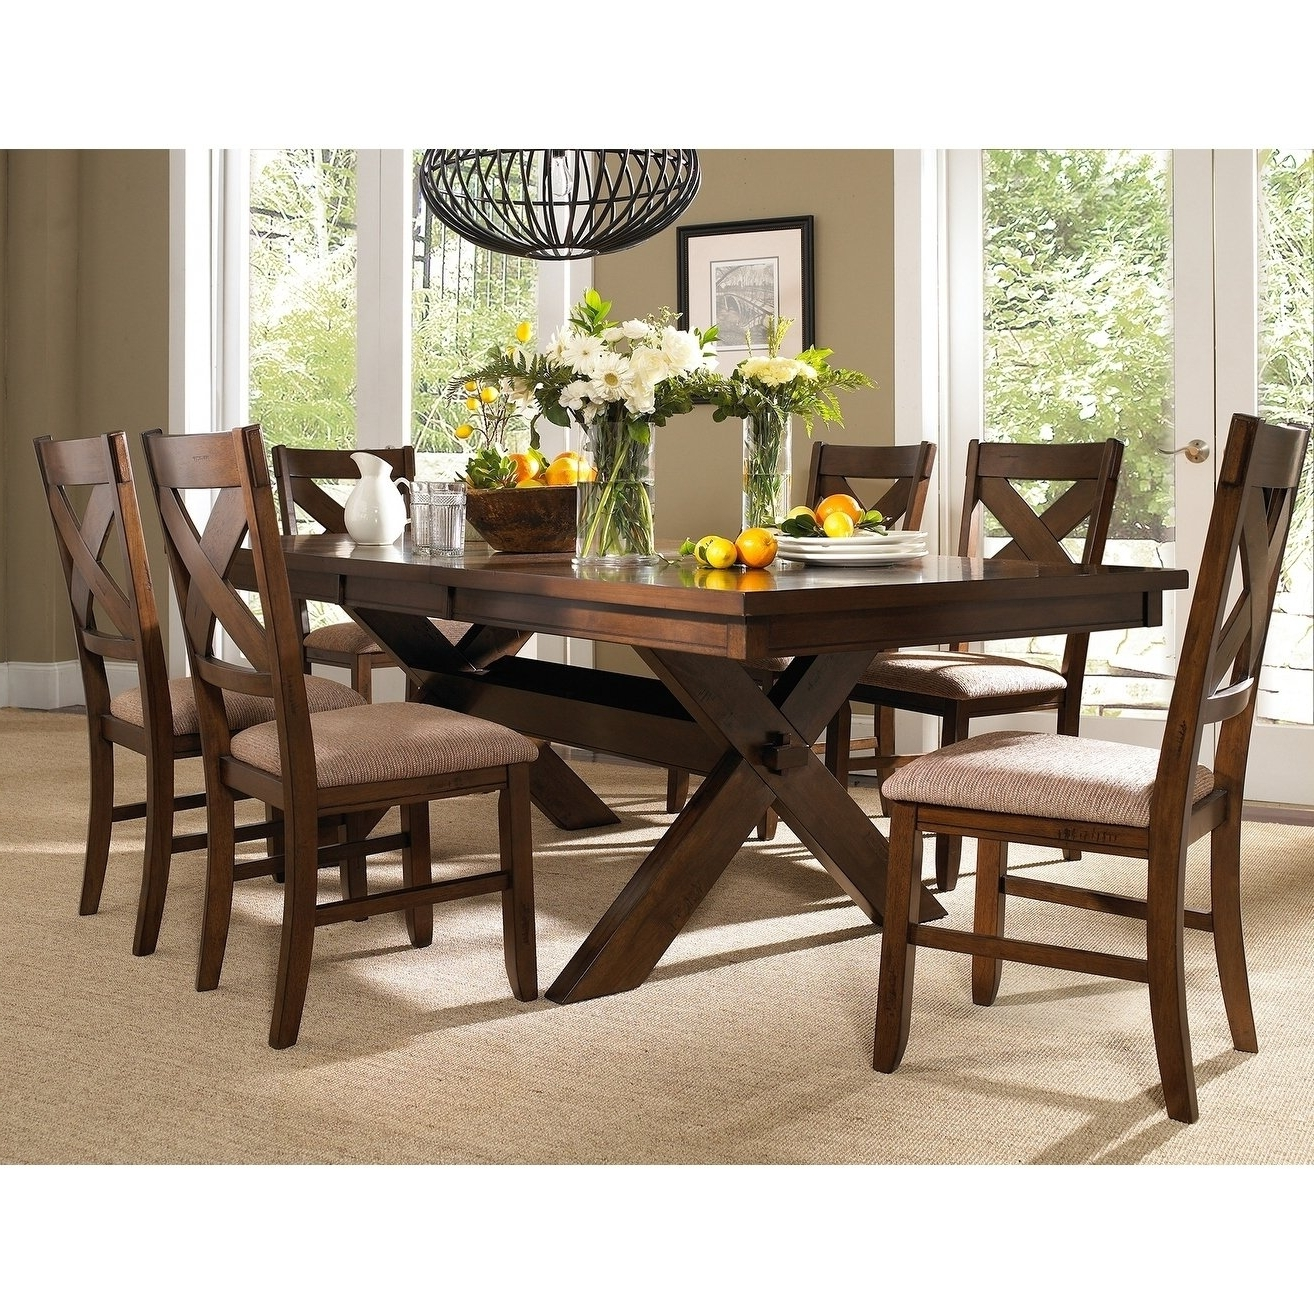 Well Liked Shop Gracewood Hollow Doctorow 7 Piece Solid Wood Dining Set With Regarding Solid Oak Dining Tables And 6 Chairs (View 24 of 25)